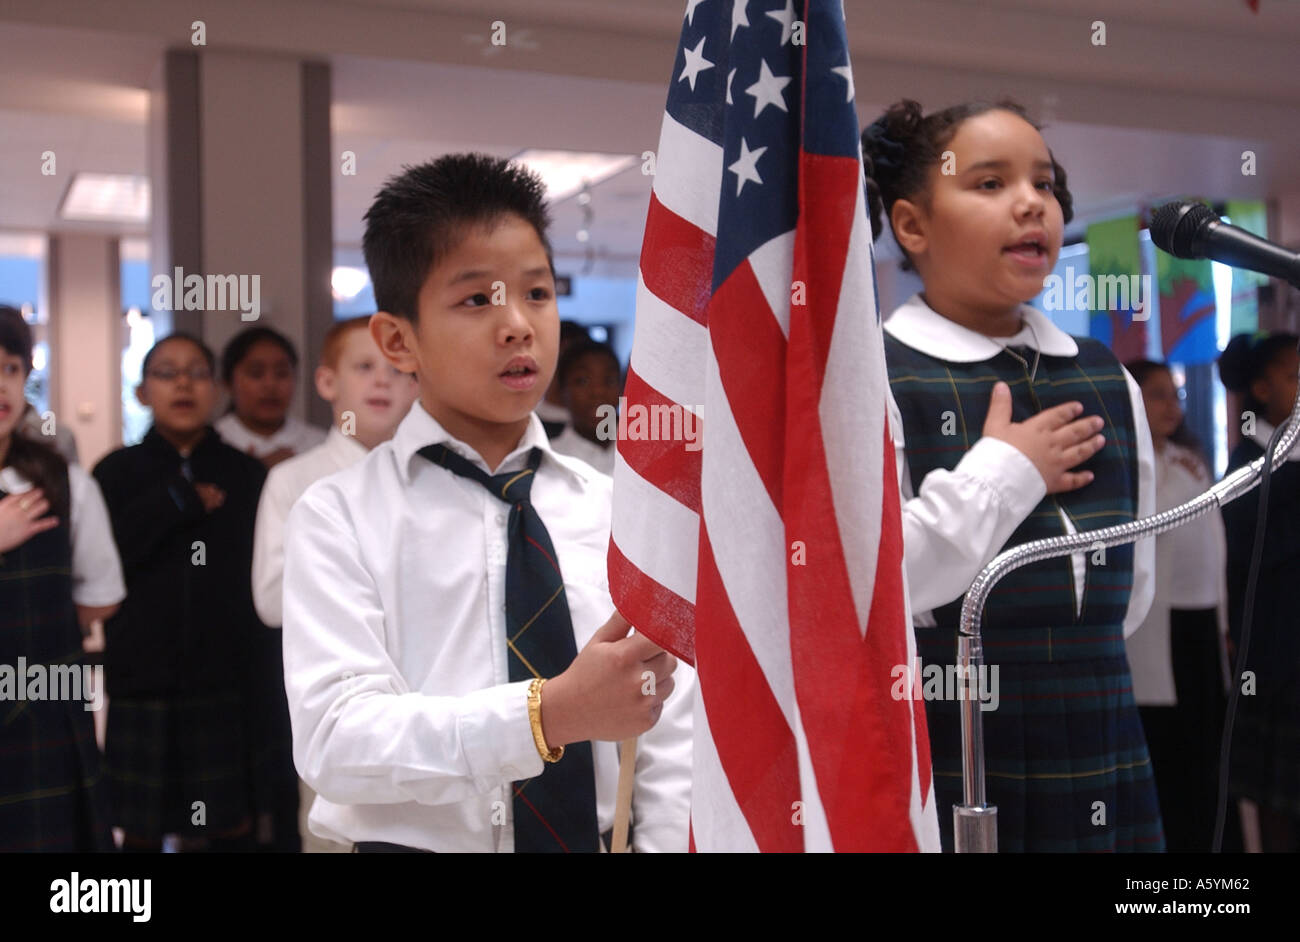 Students recite the Pledge of Allegiance to the flag in a Connecticut US school - Stock Image